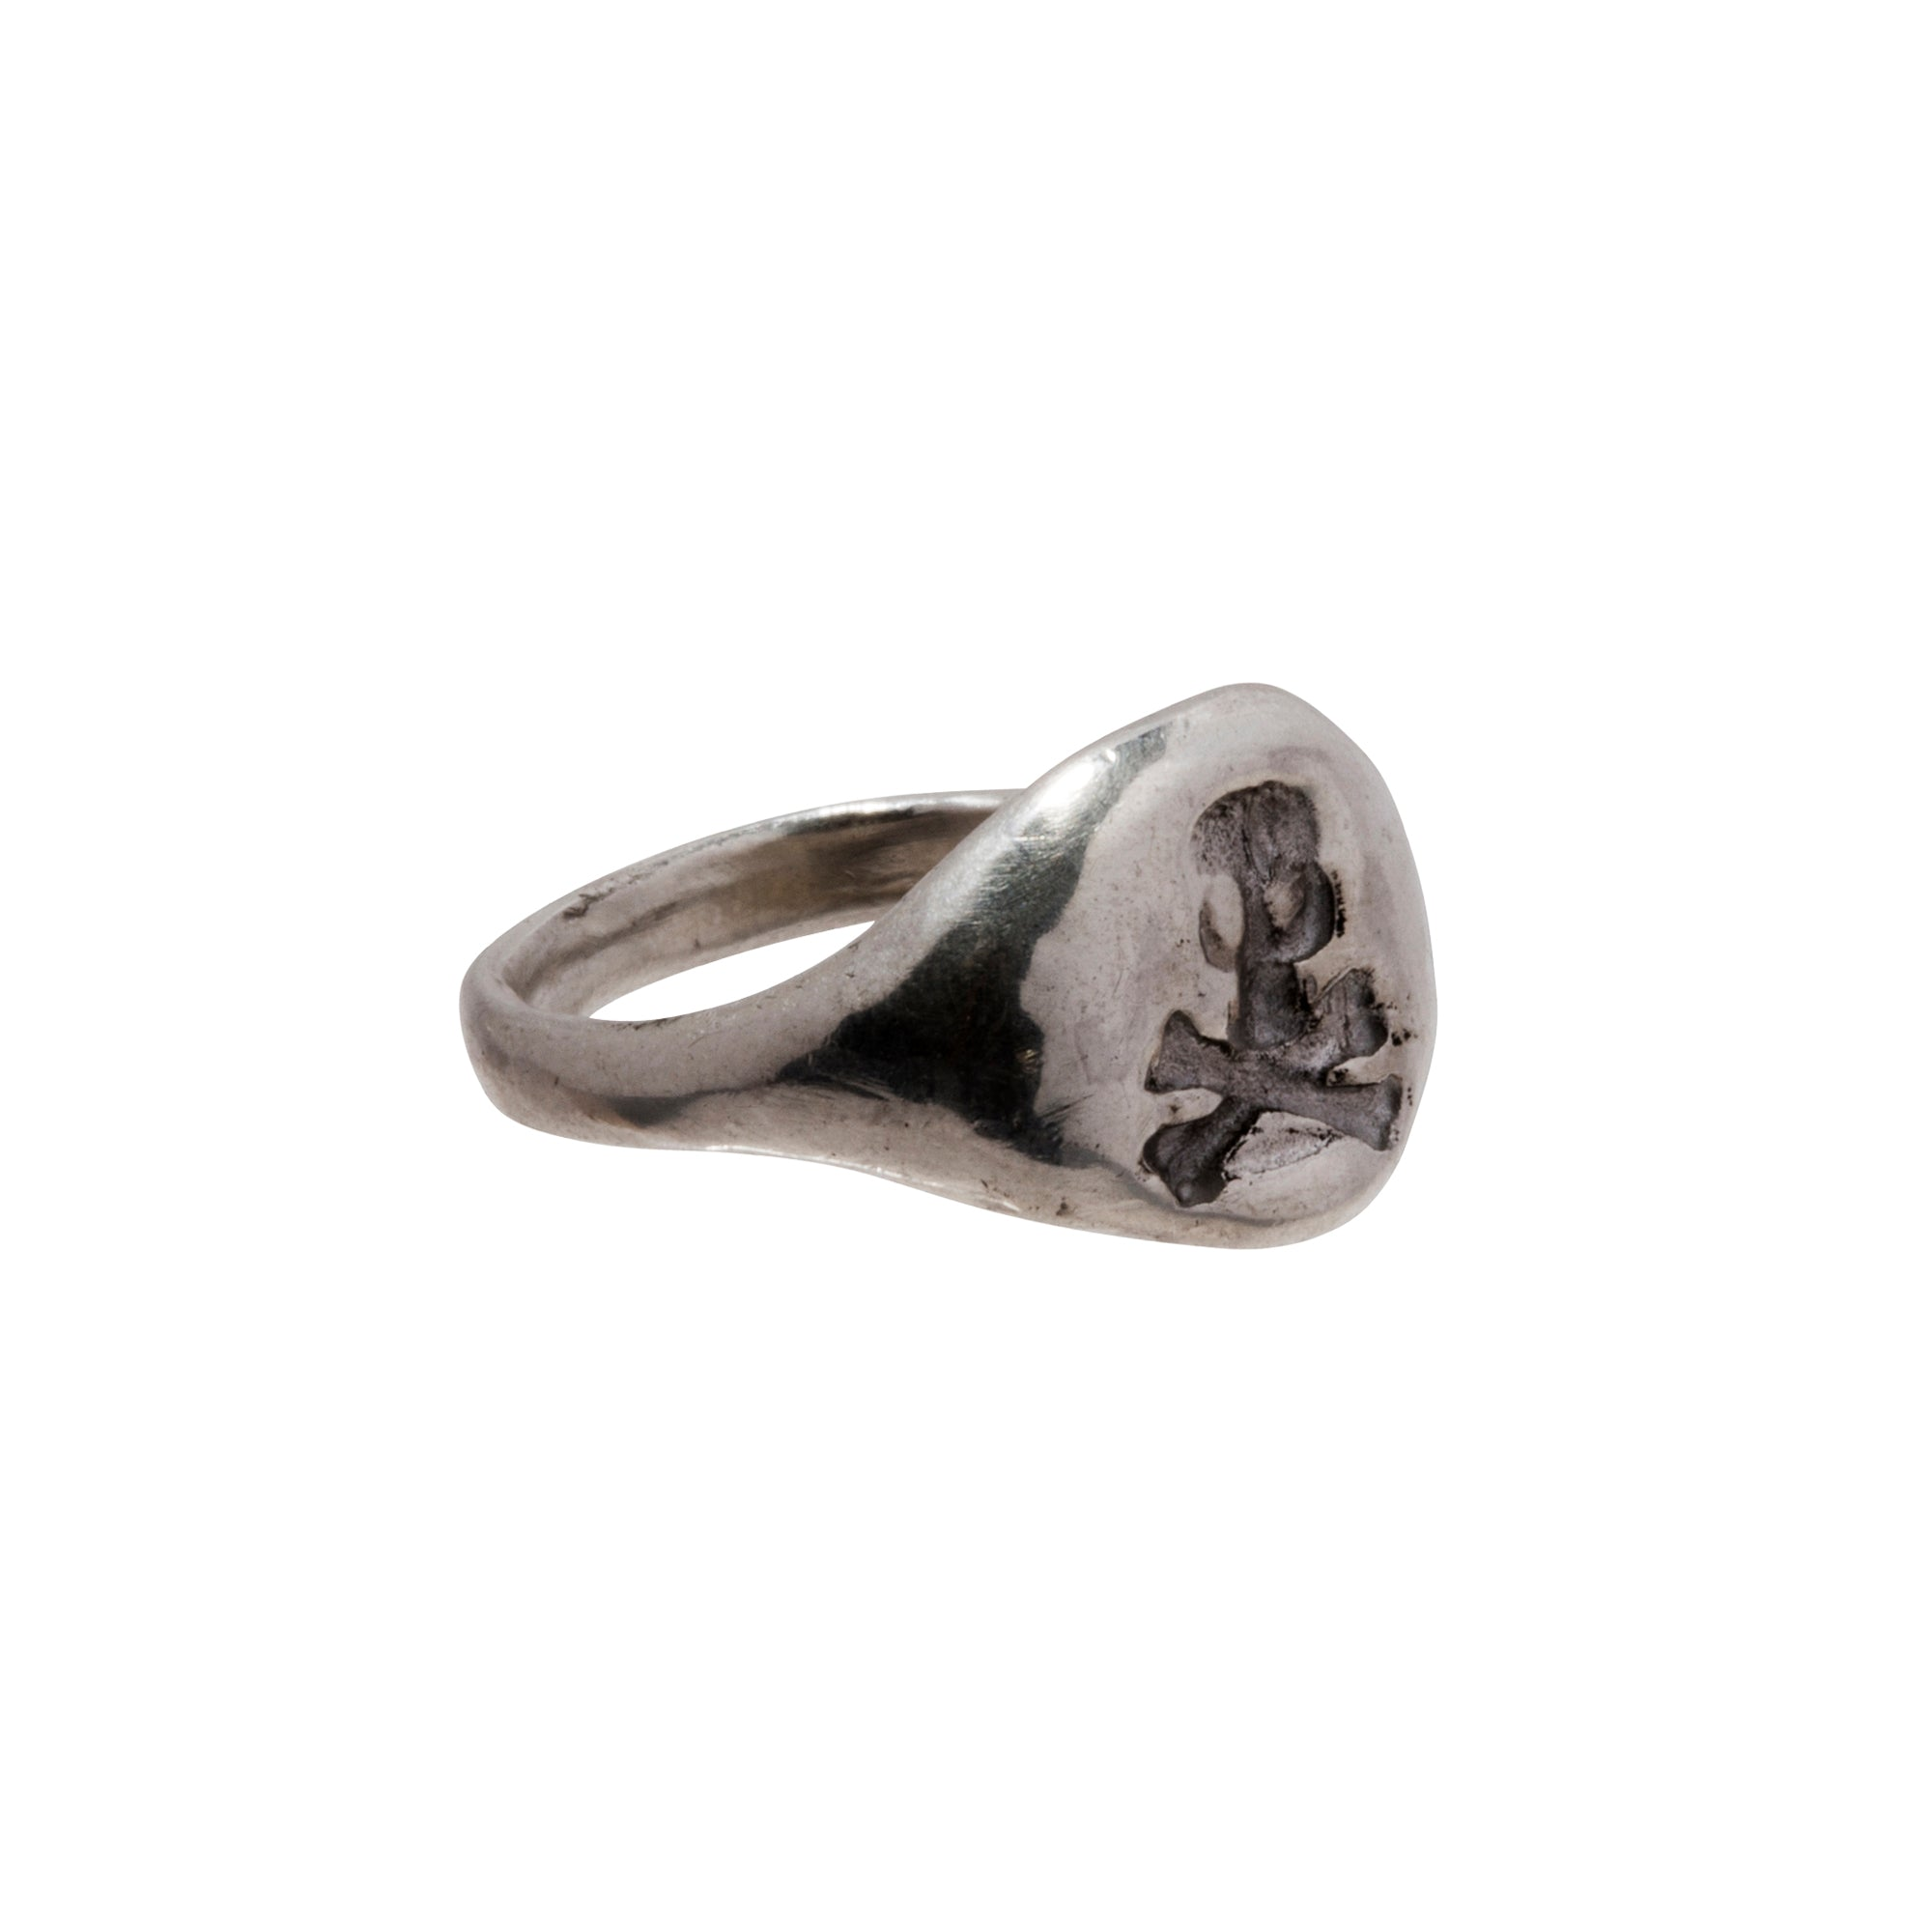 Silver Skull Ring by James Colarusso for Broken English Jewelry